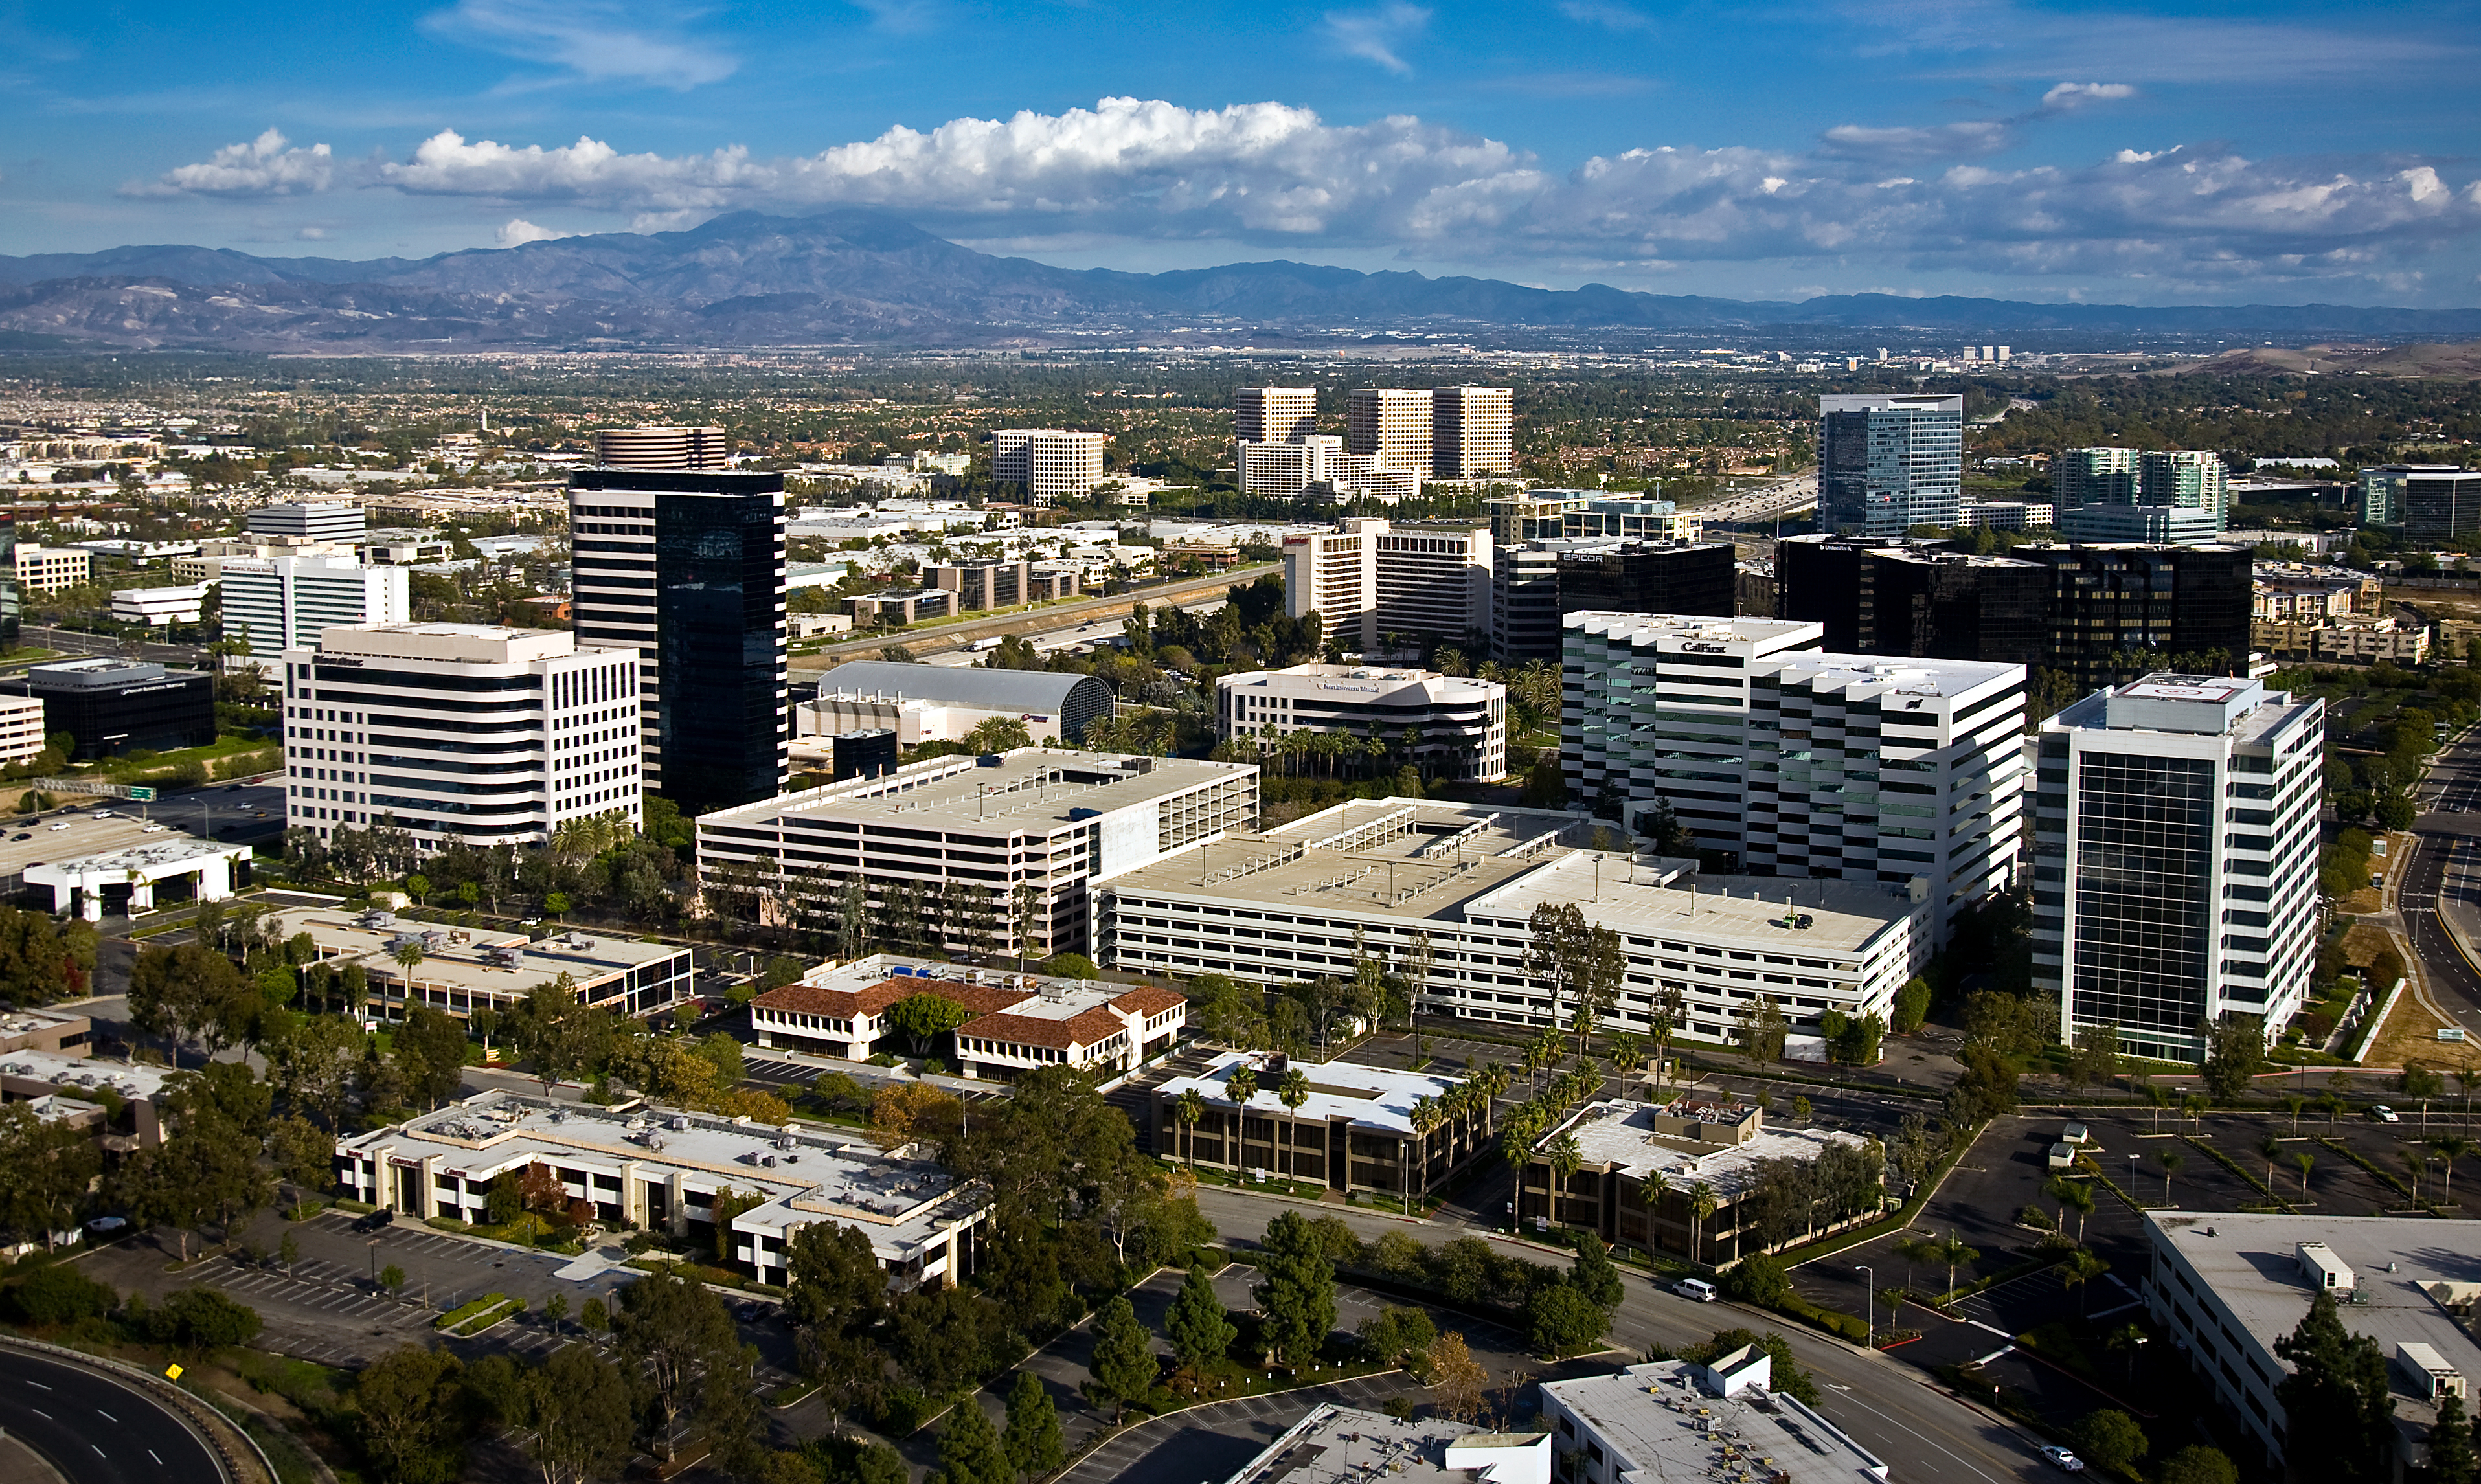 Irvine California Find Hotels Restaurants Things To Do